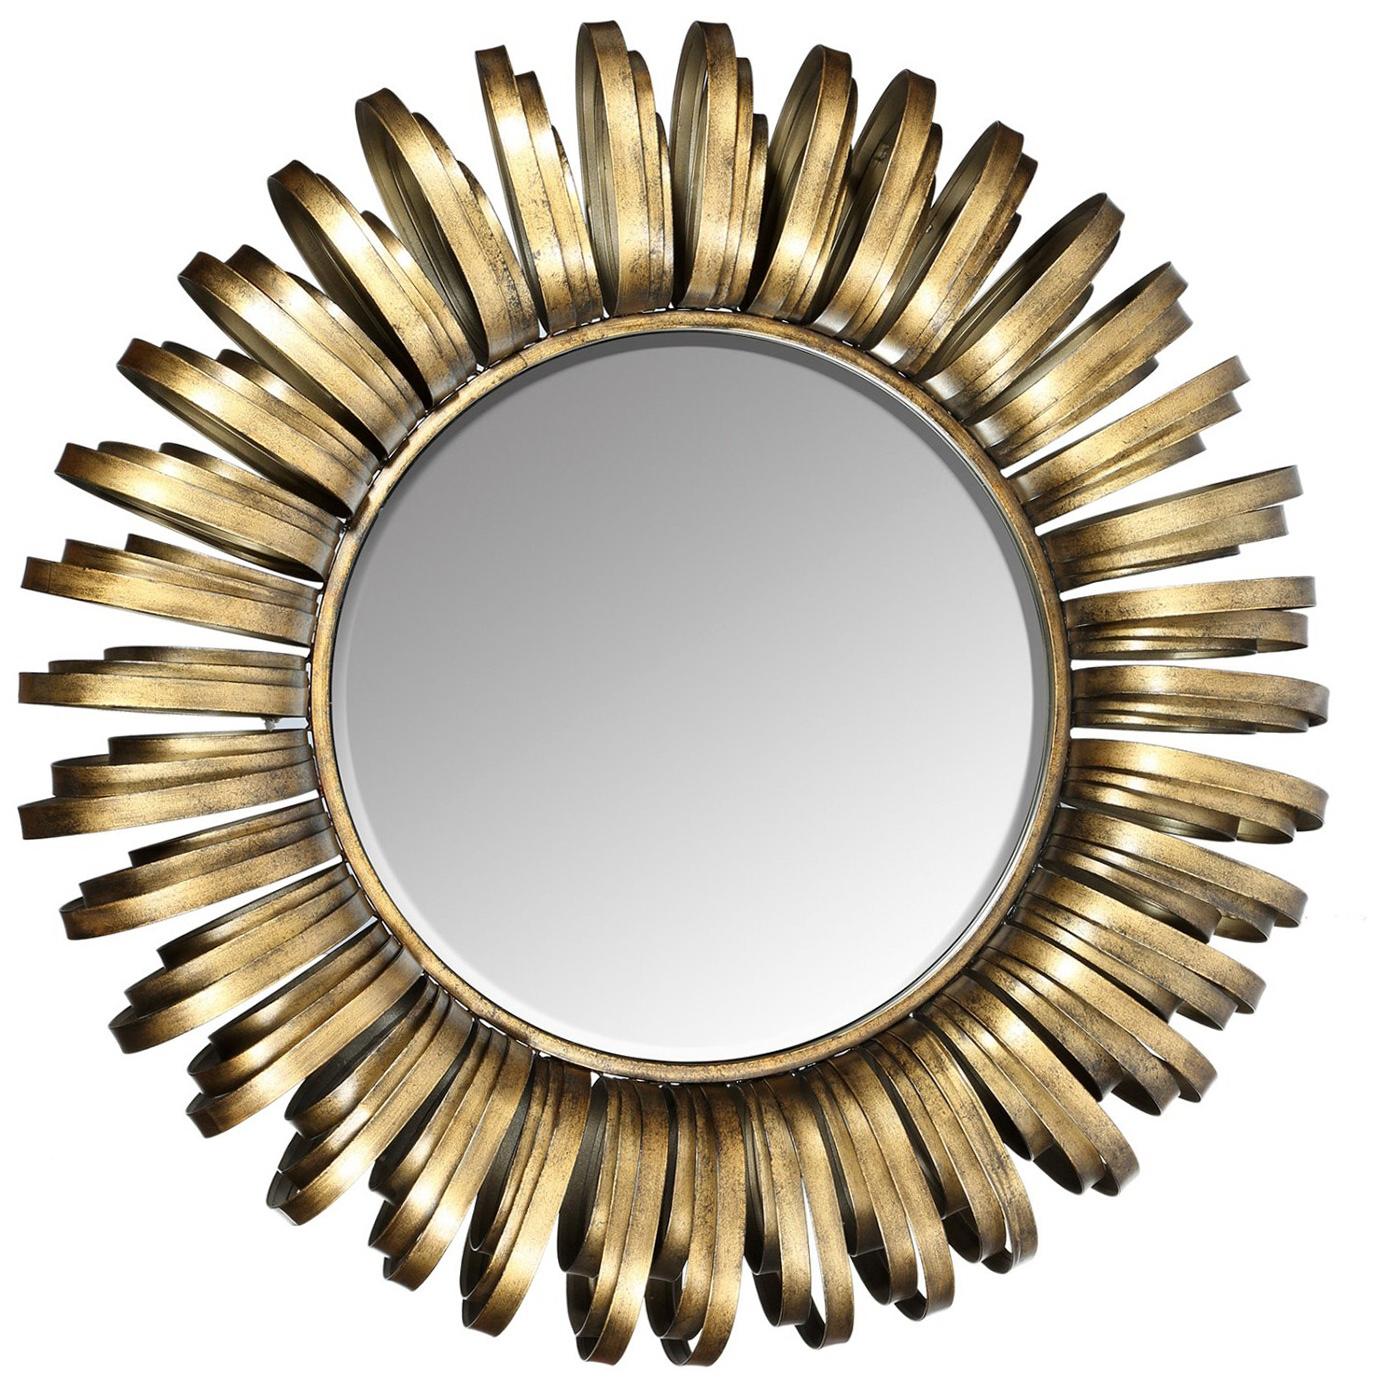 Decorative Wall Mirrors Online India